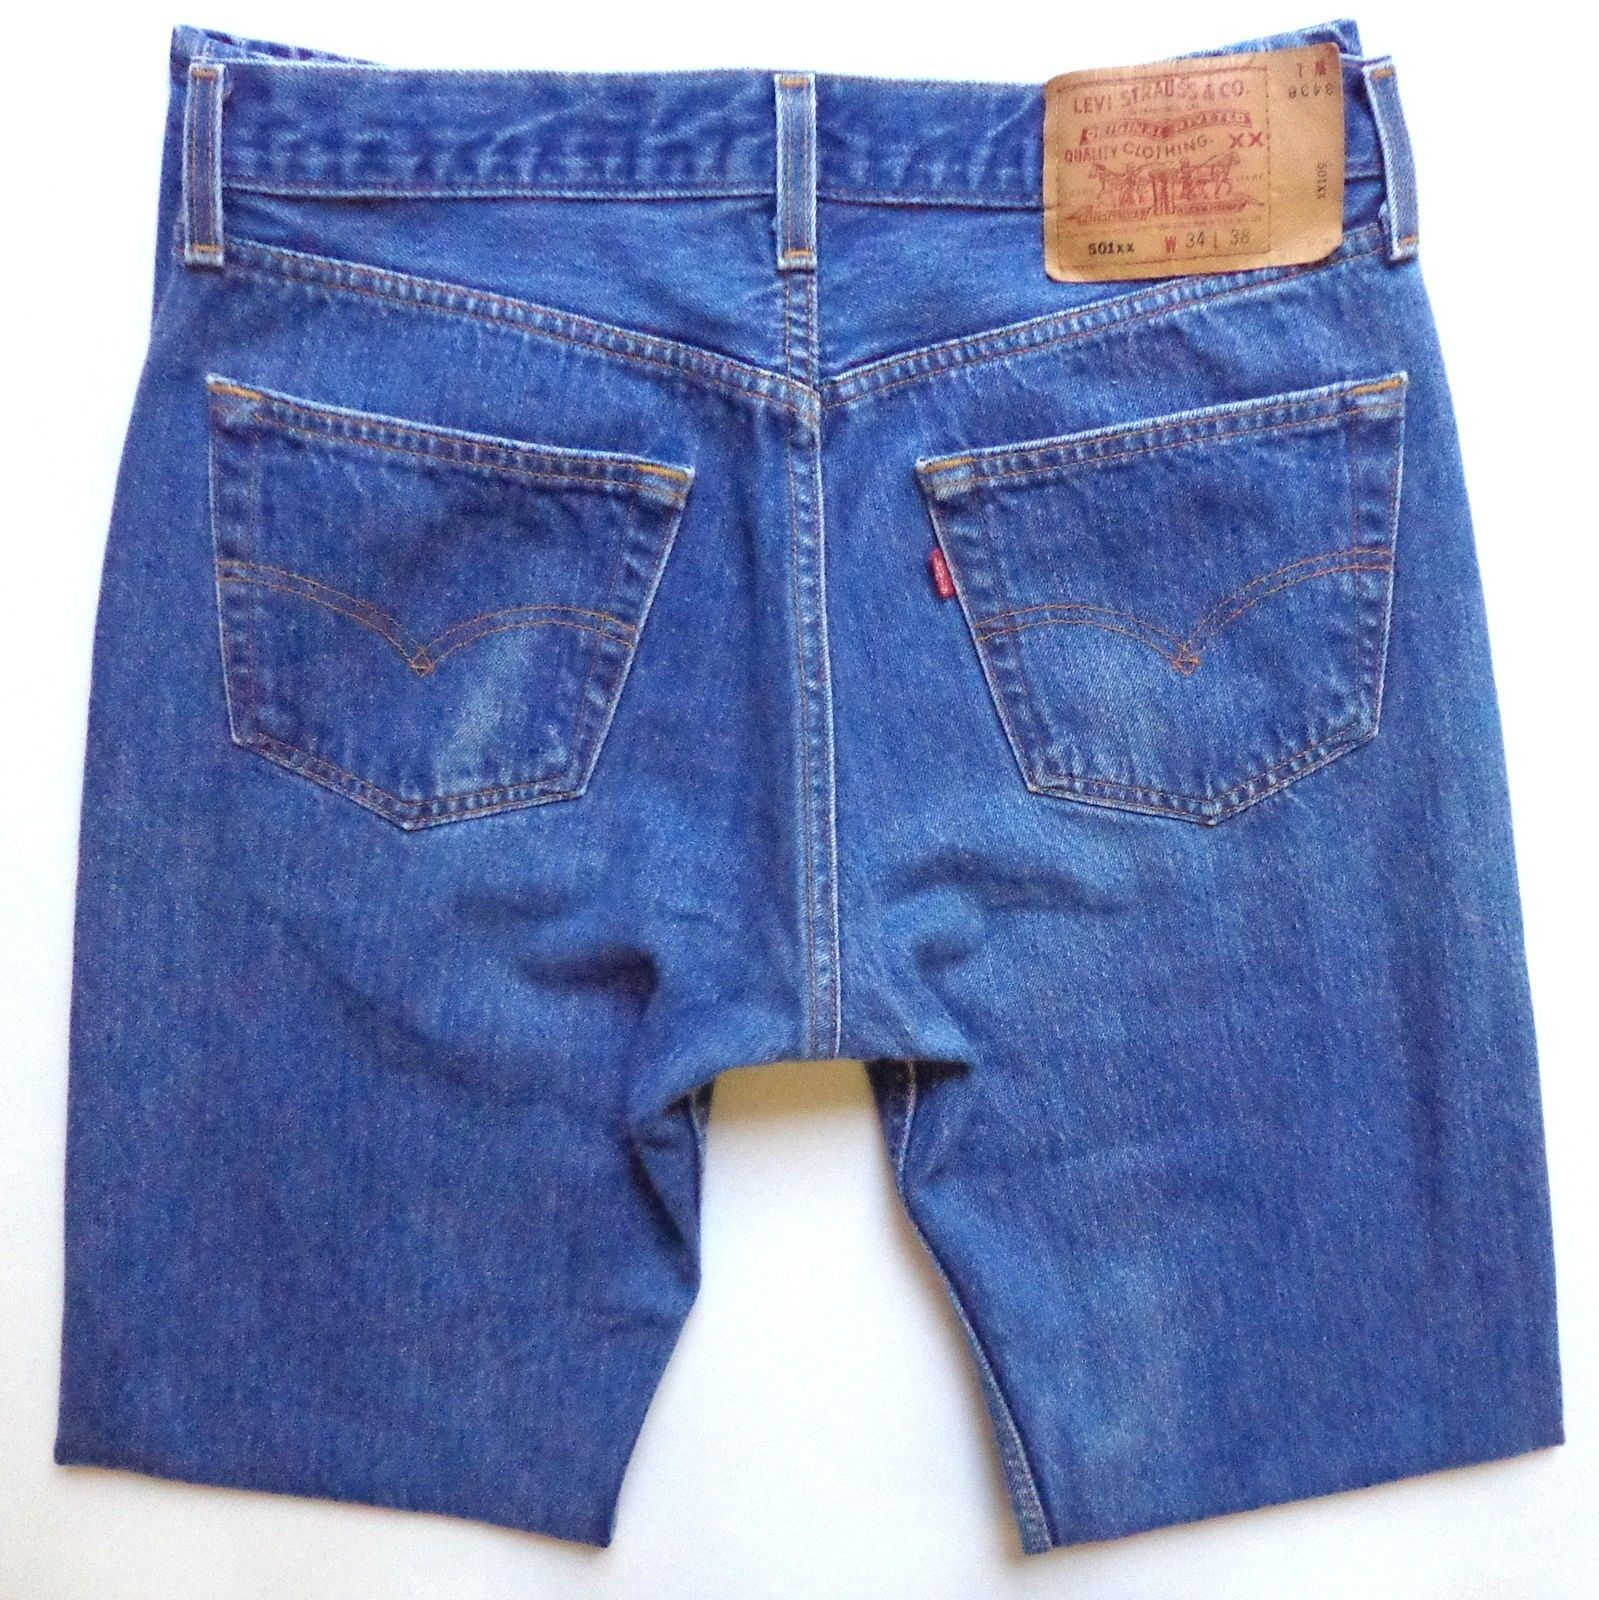 78b59998 Levis 501xx Button Fly Jeans Mens Size 32 x and 50 similar items. S l1600